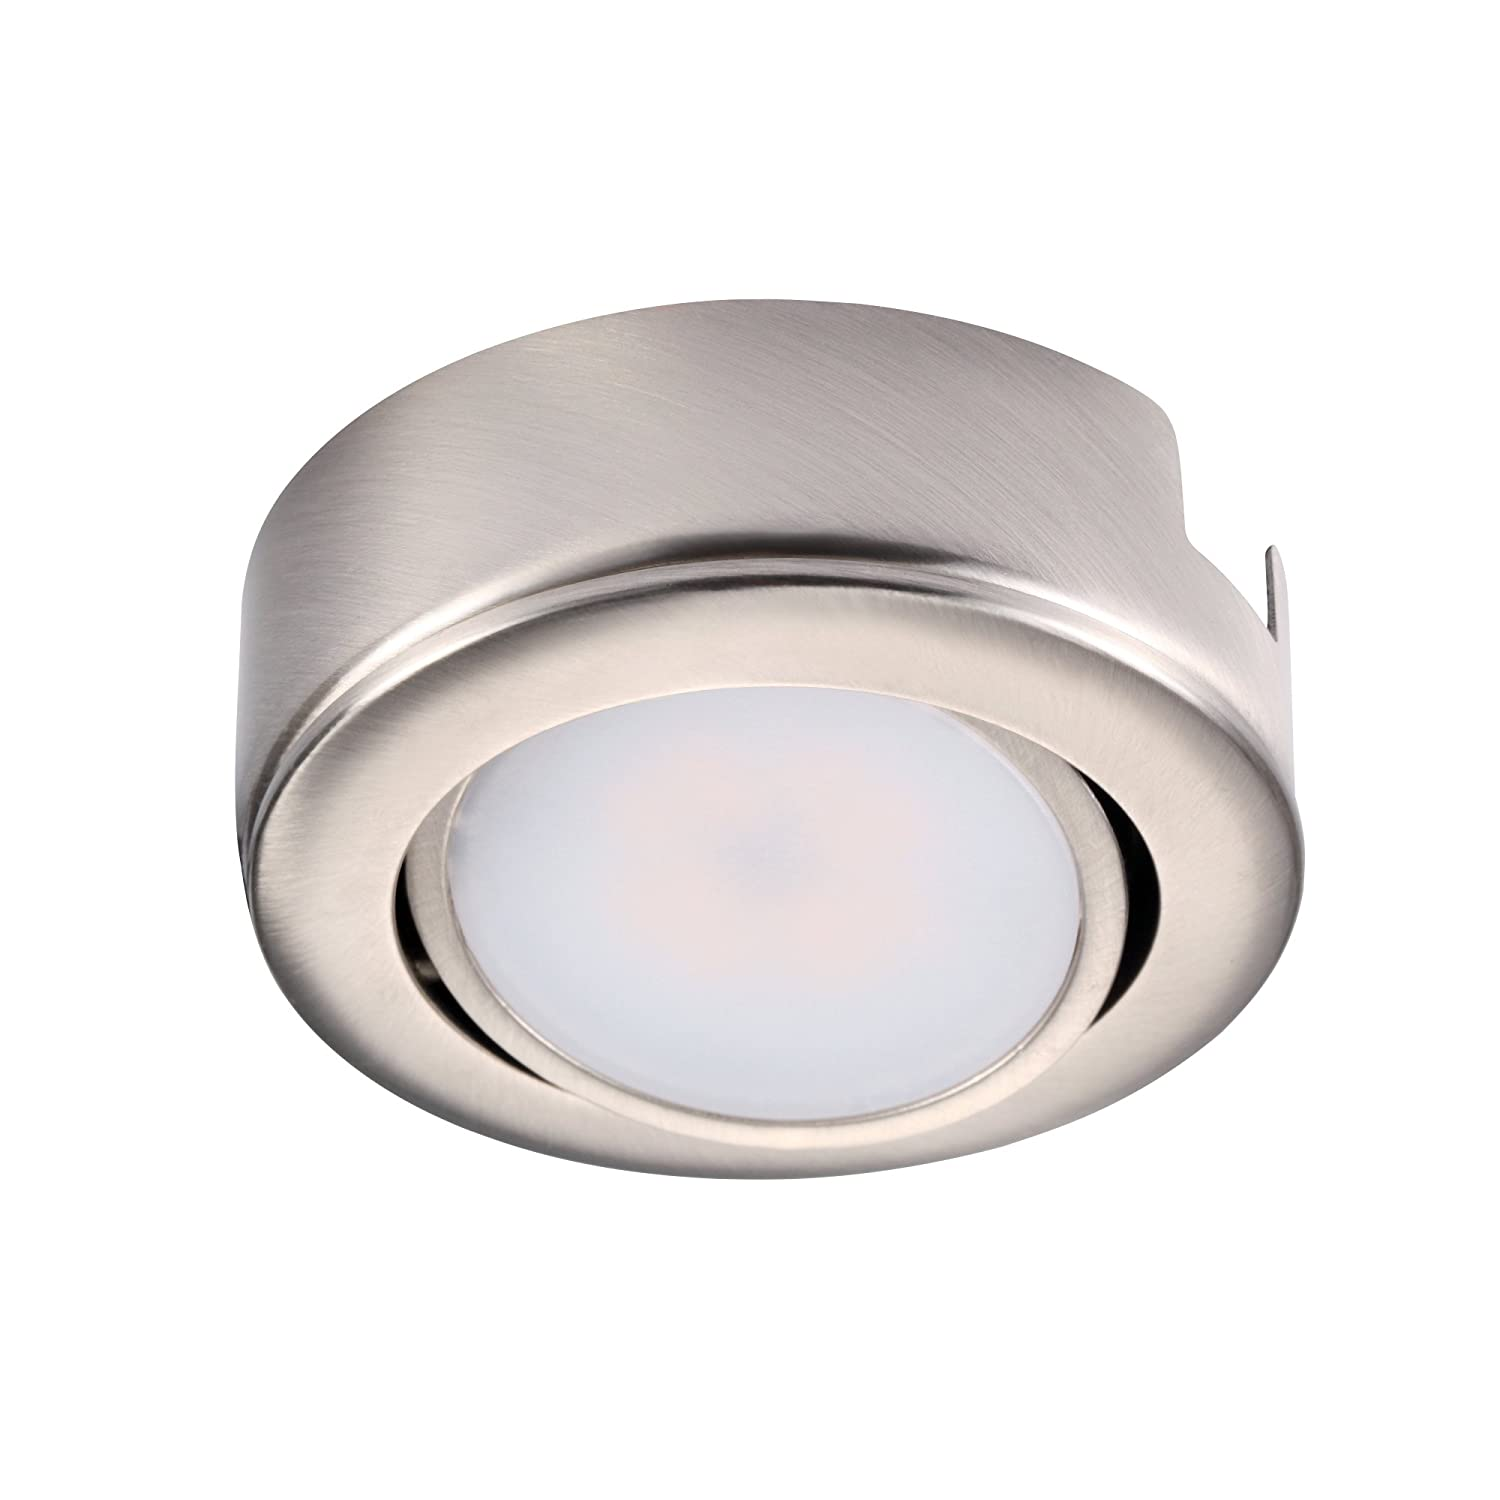 GETINLIGHT Dimmable and Swivel, LED Puck Light with ETL List, Recessed or Surface Mount Design, Bright White 4000K, Brushed Nickel Finished, Power Cord Not Included, IN-0107-1-SN-40